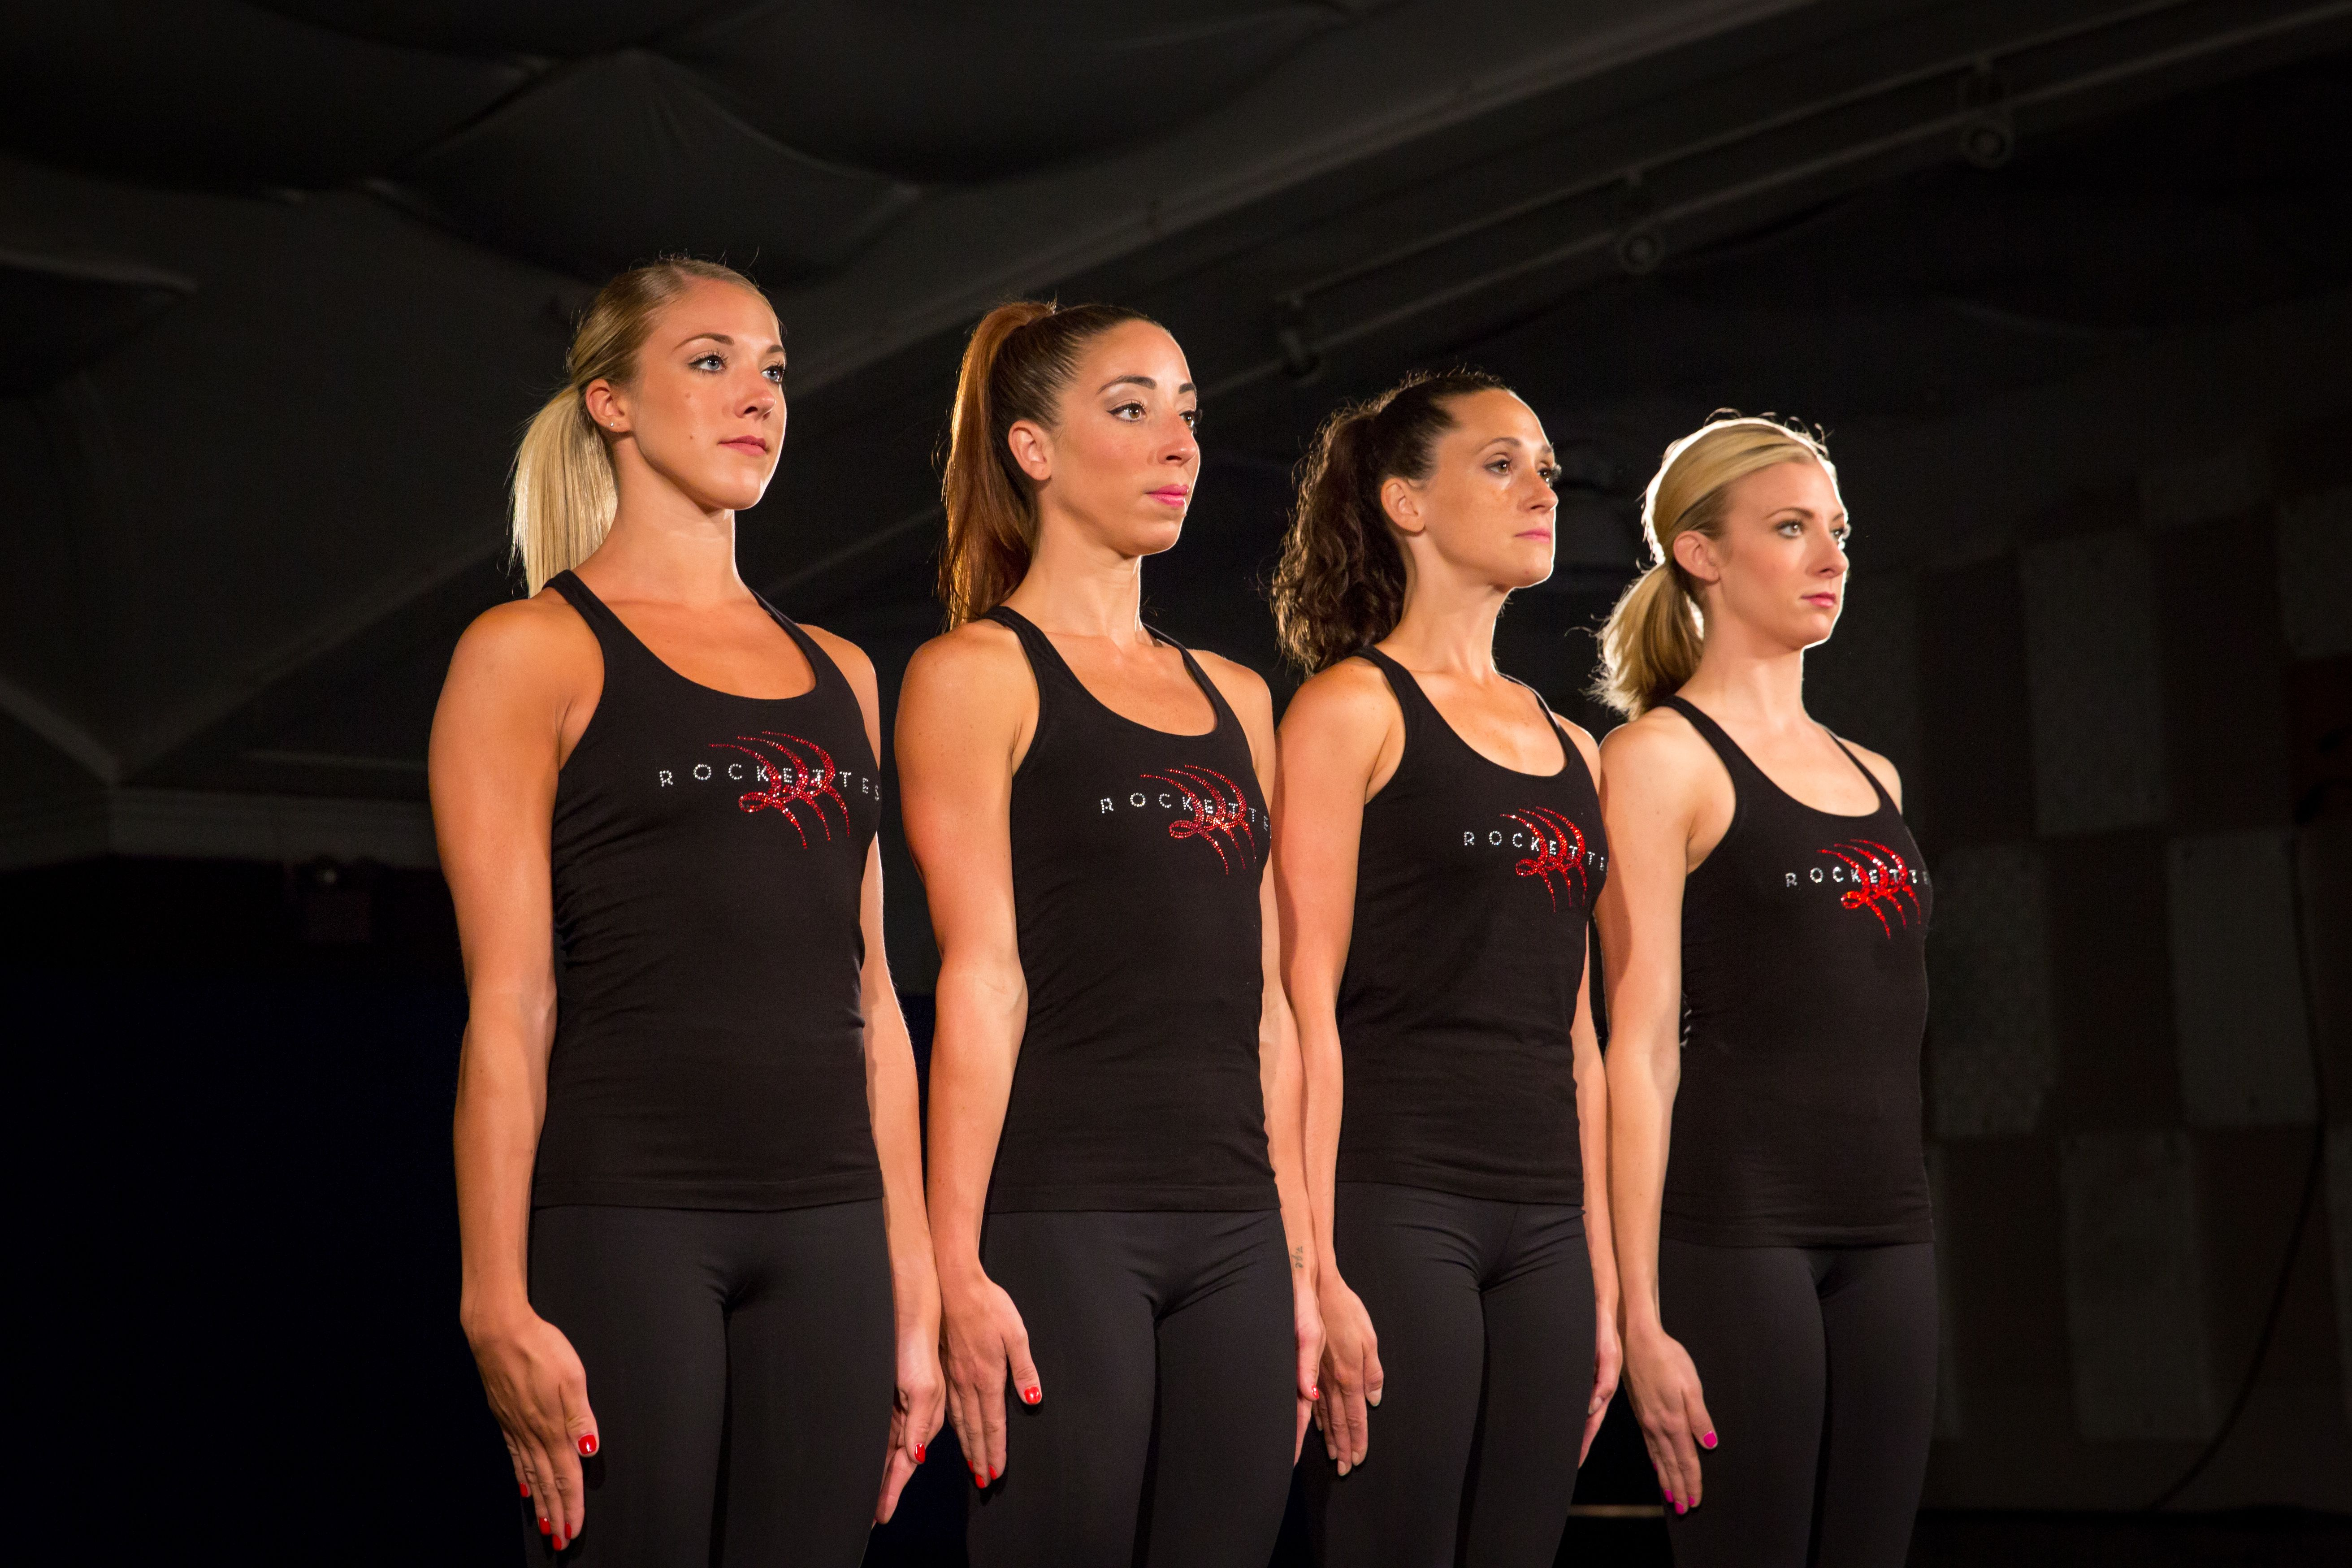 Rockettes Dance Moves: 'Parade of the Wooden Soldiers' Squad Revolve | Dance moves, Rockettes ...